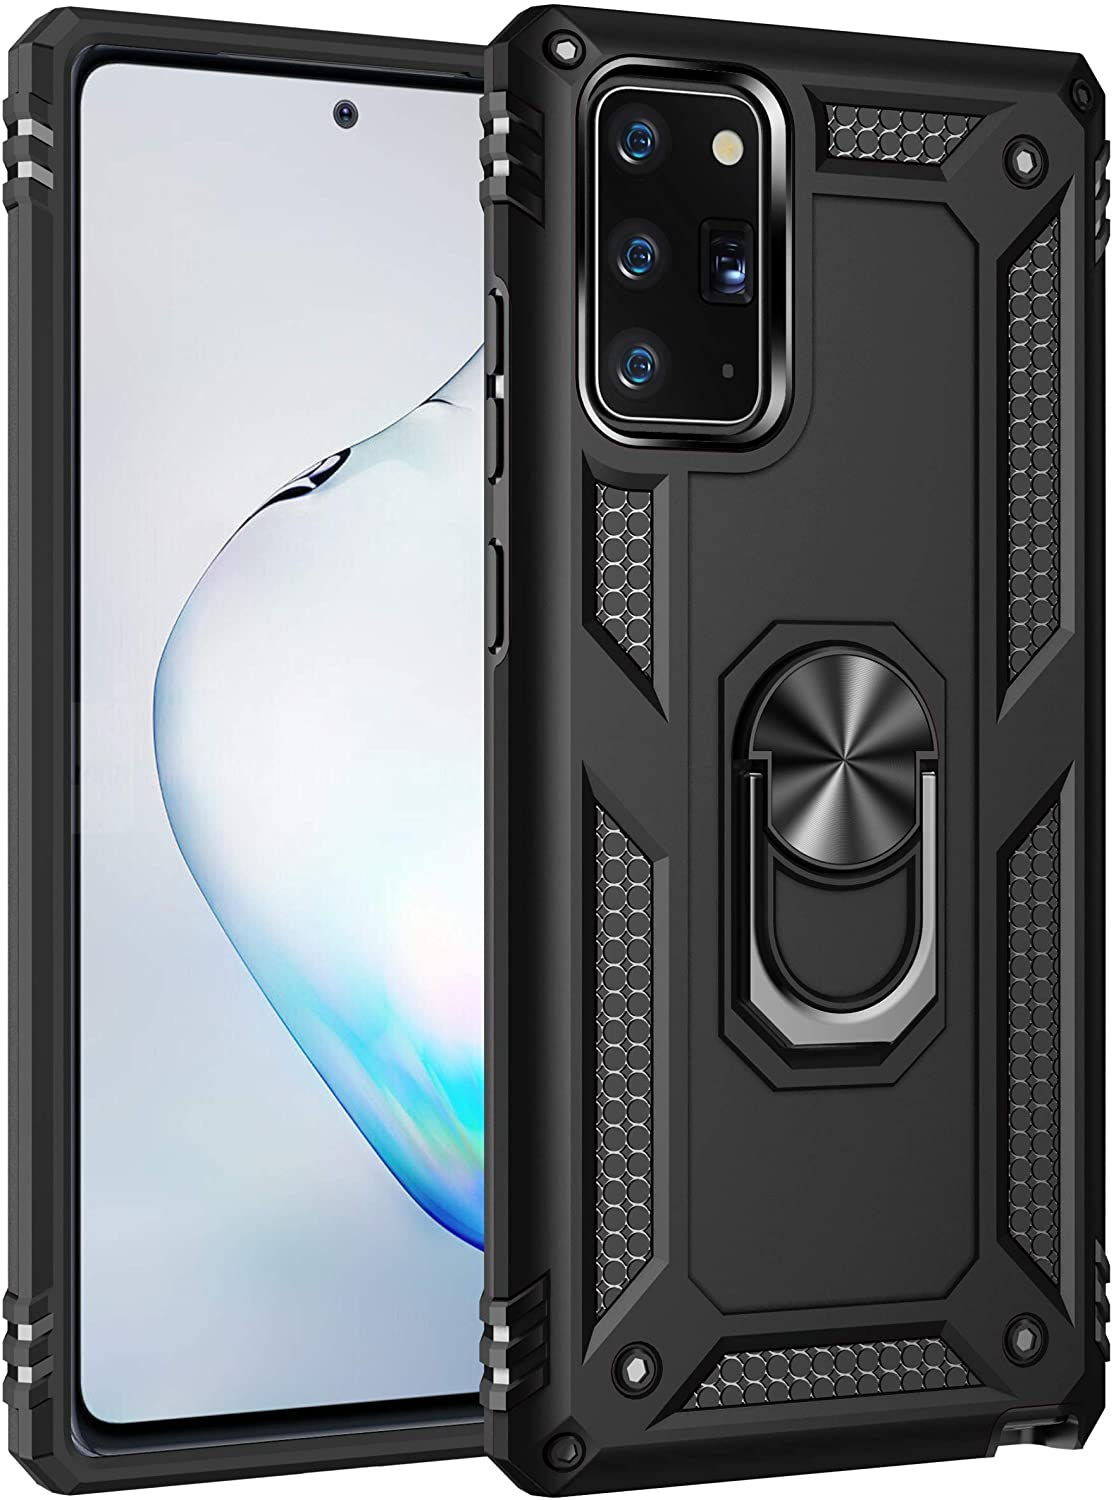 Konyaoo for Galaxy Note 20 5G/Note 20 case, withShockproof and Sturdy Armored Double-Layer Plastic TPU Cover Ring, for Samsung Galaxy Note 20 6.7 inch Black